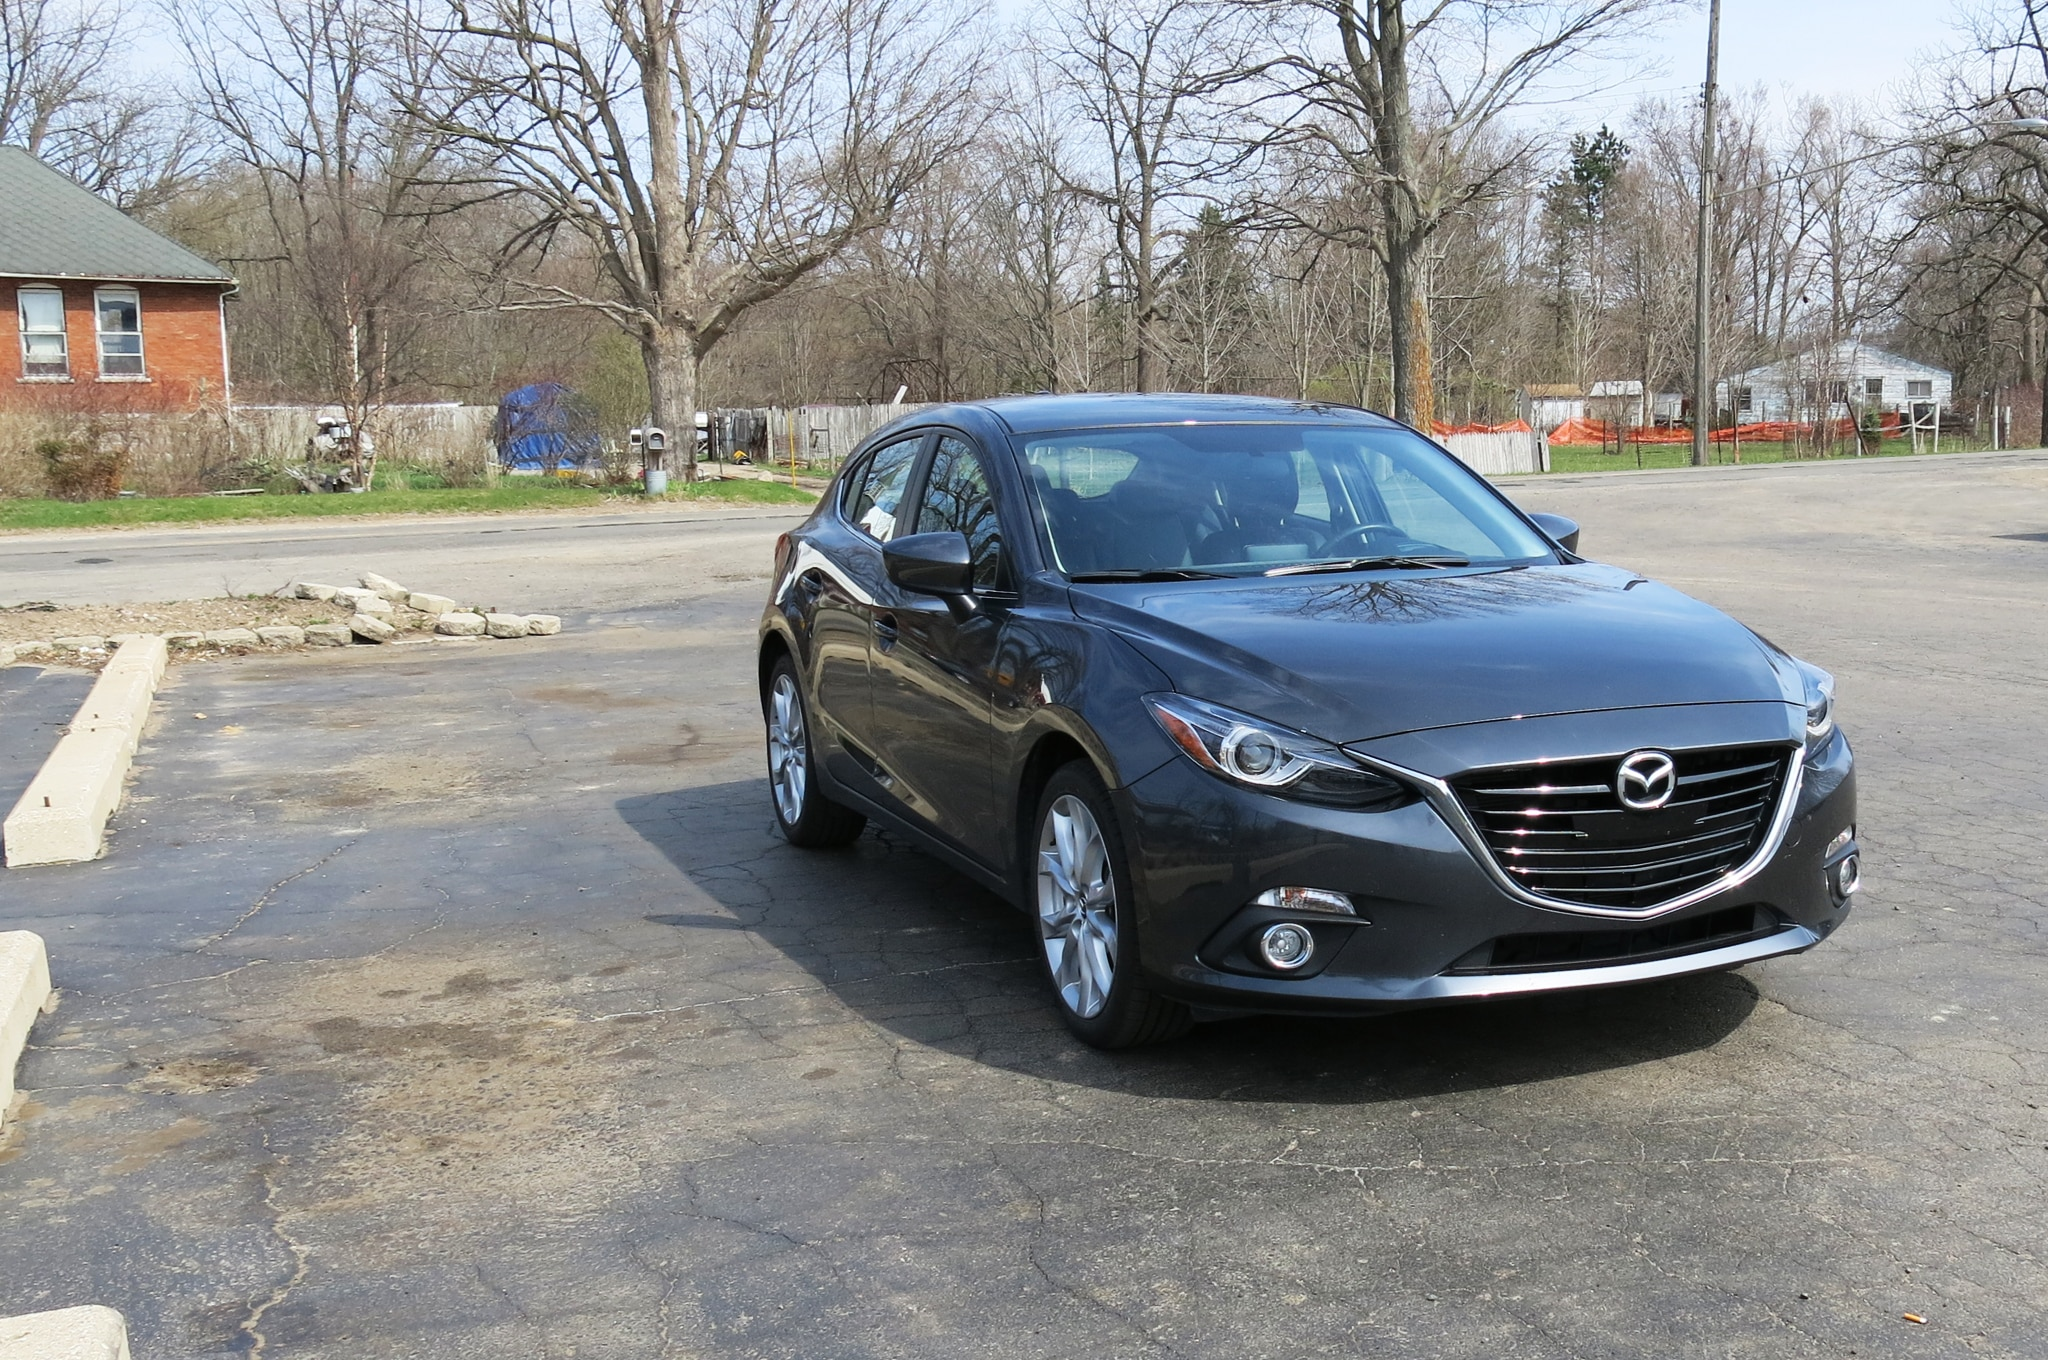 2014 mazda 3 s touring mpg test vs 2014 honda civic ex l. Black Bedroom Furniture Sets. Home Design Ideas